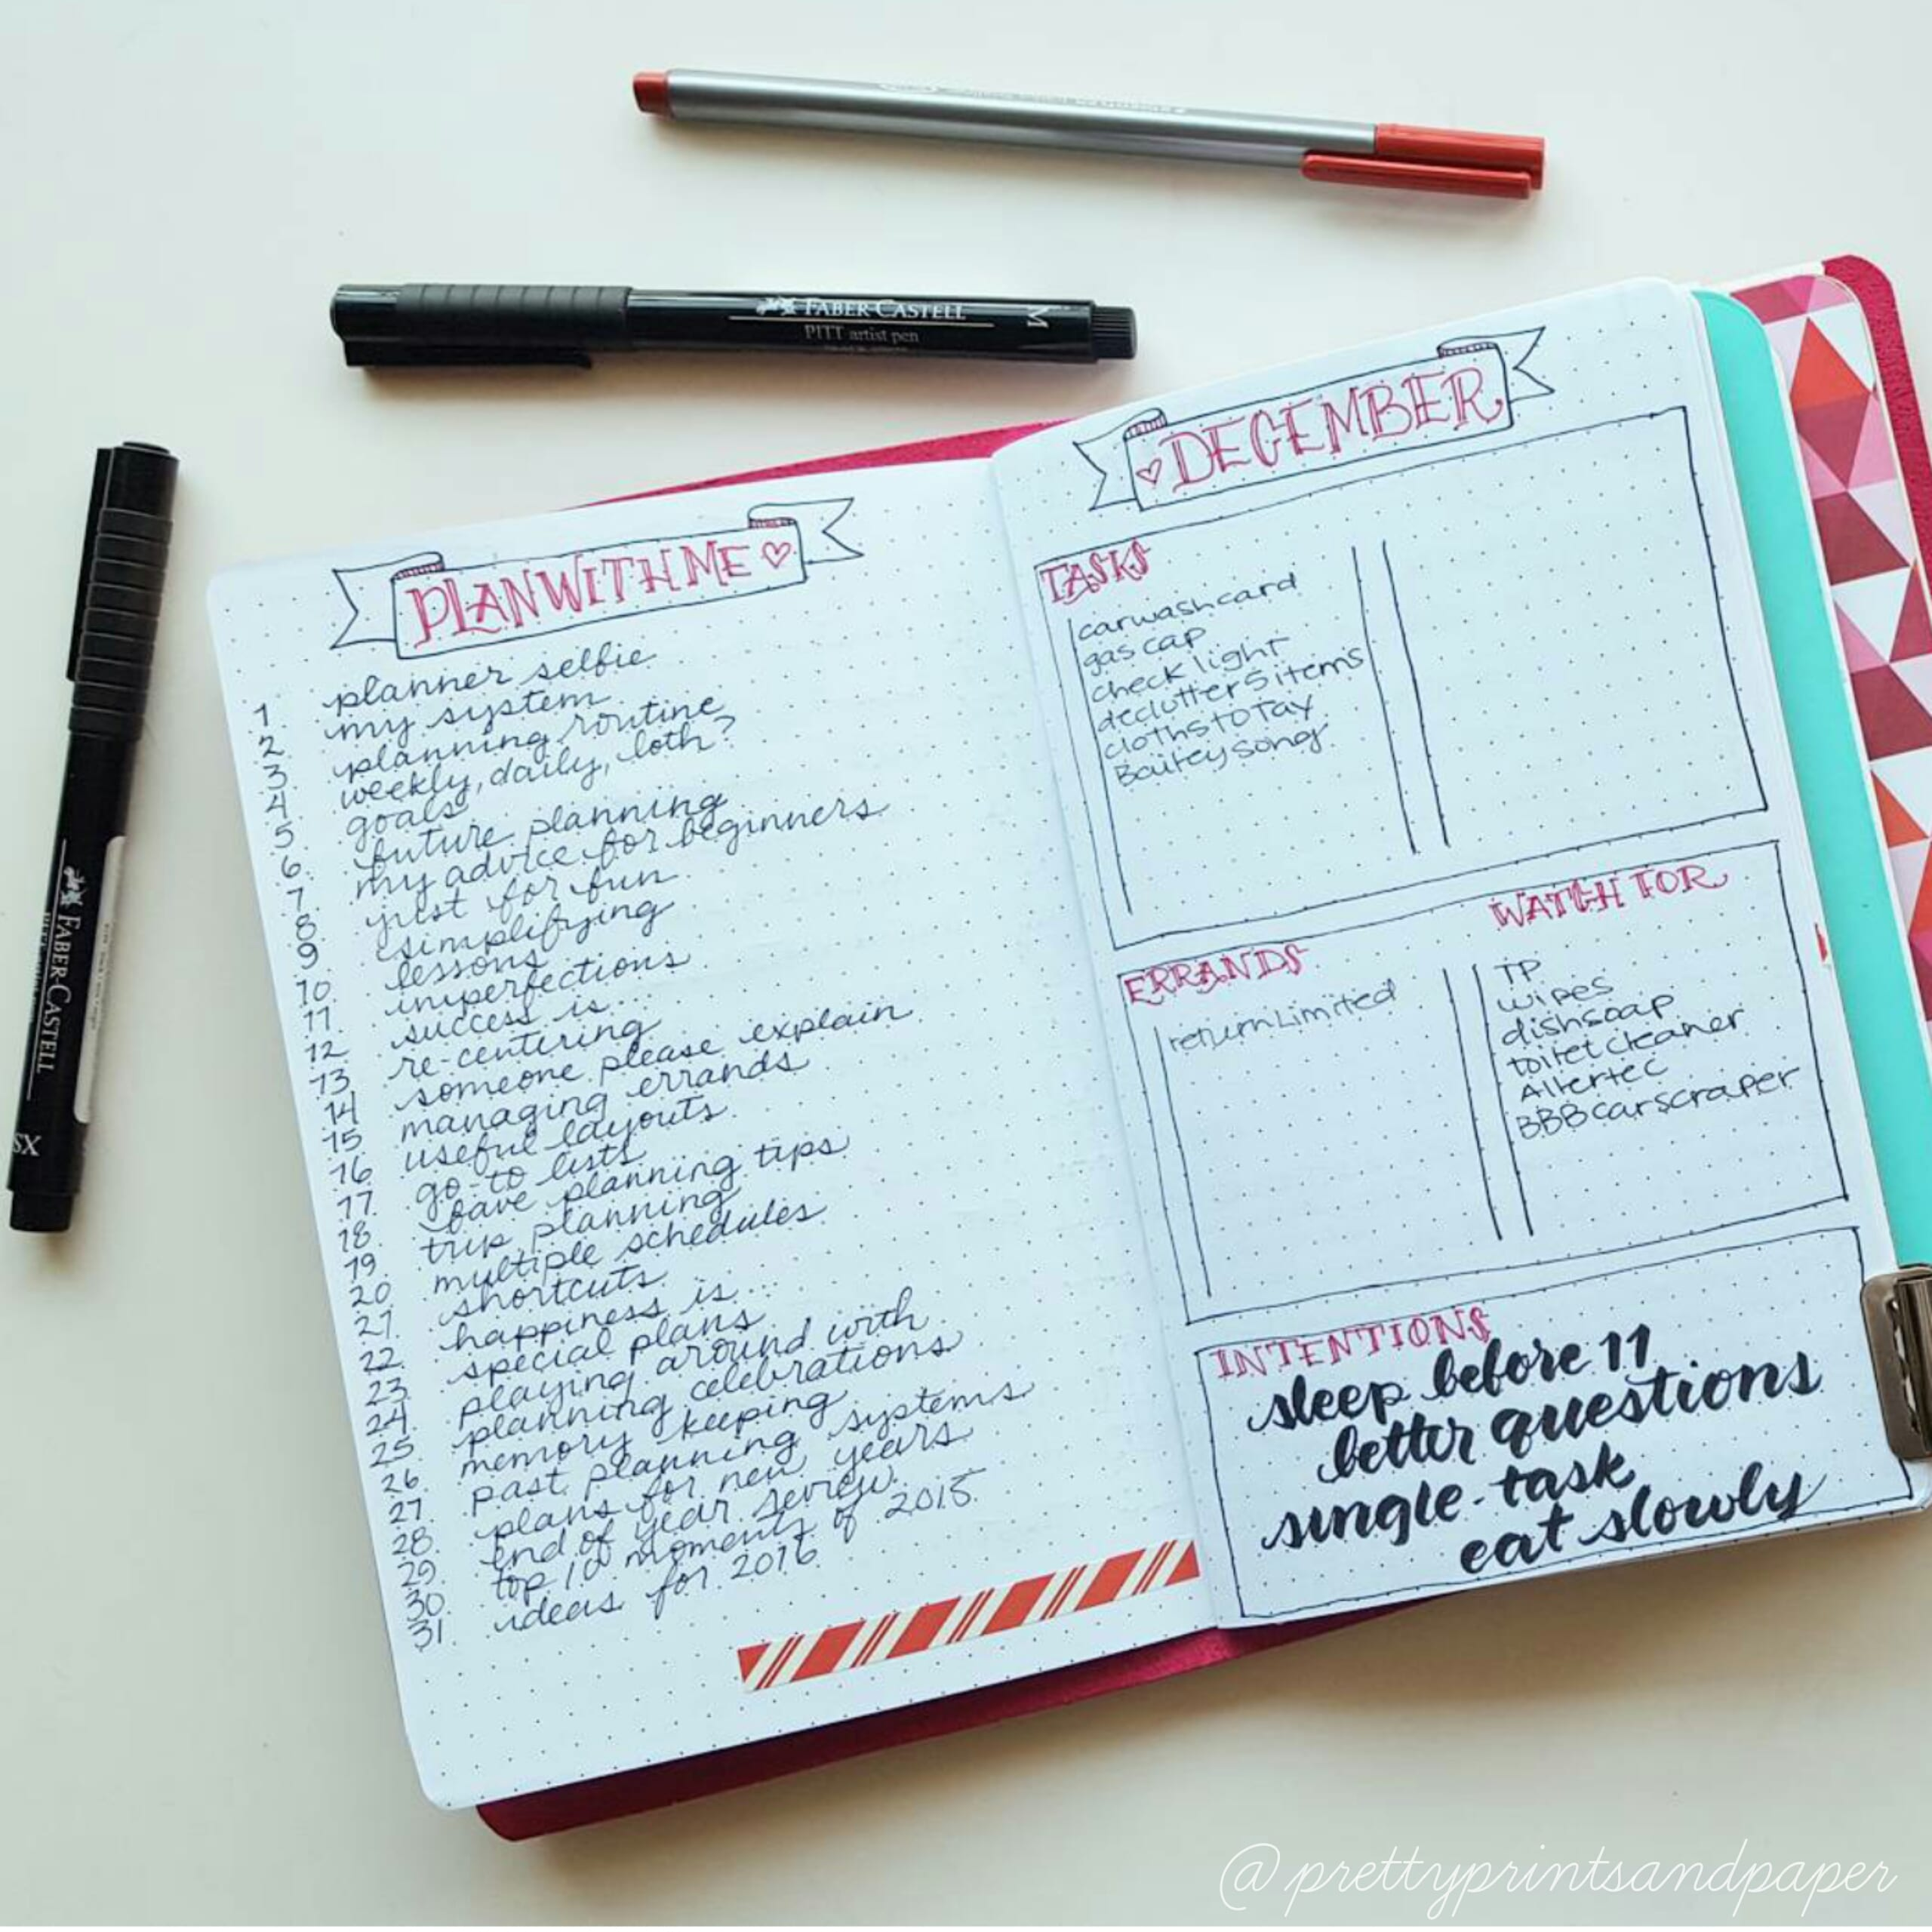 Trying to keep track of monthly tasks? Try a organizing your bullet journal this way // www.prettyprintsandpaper.com